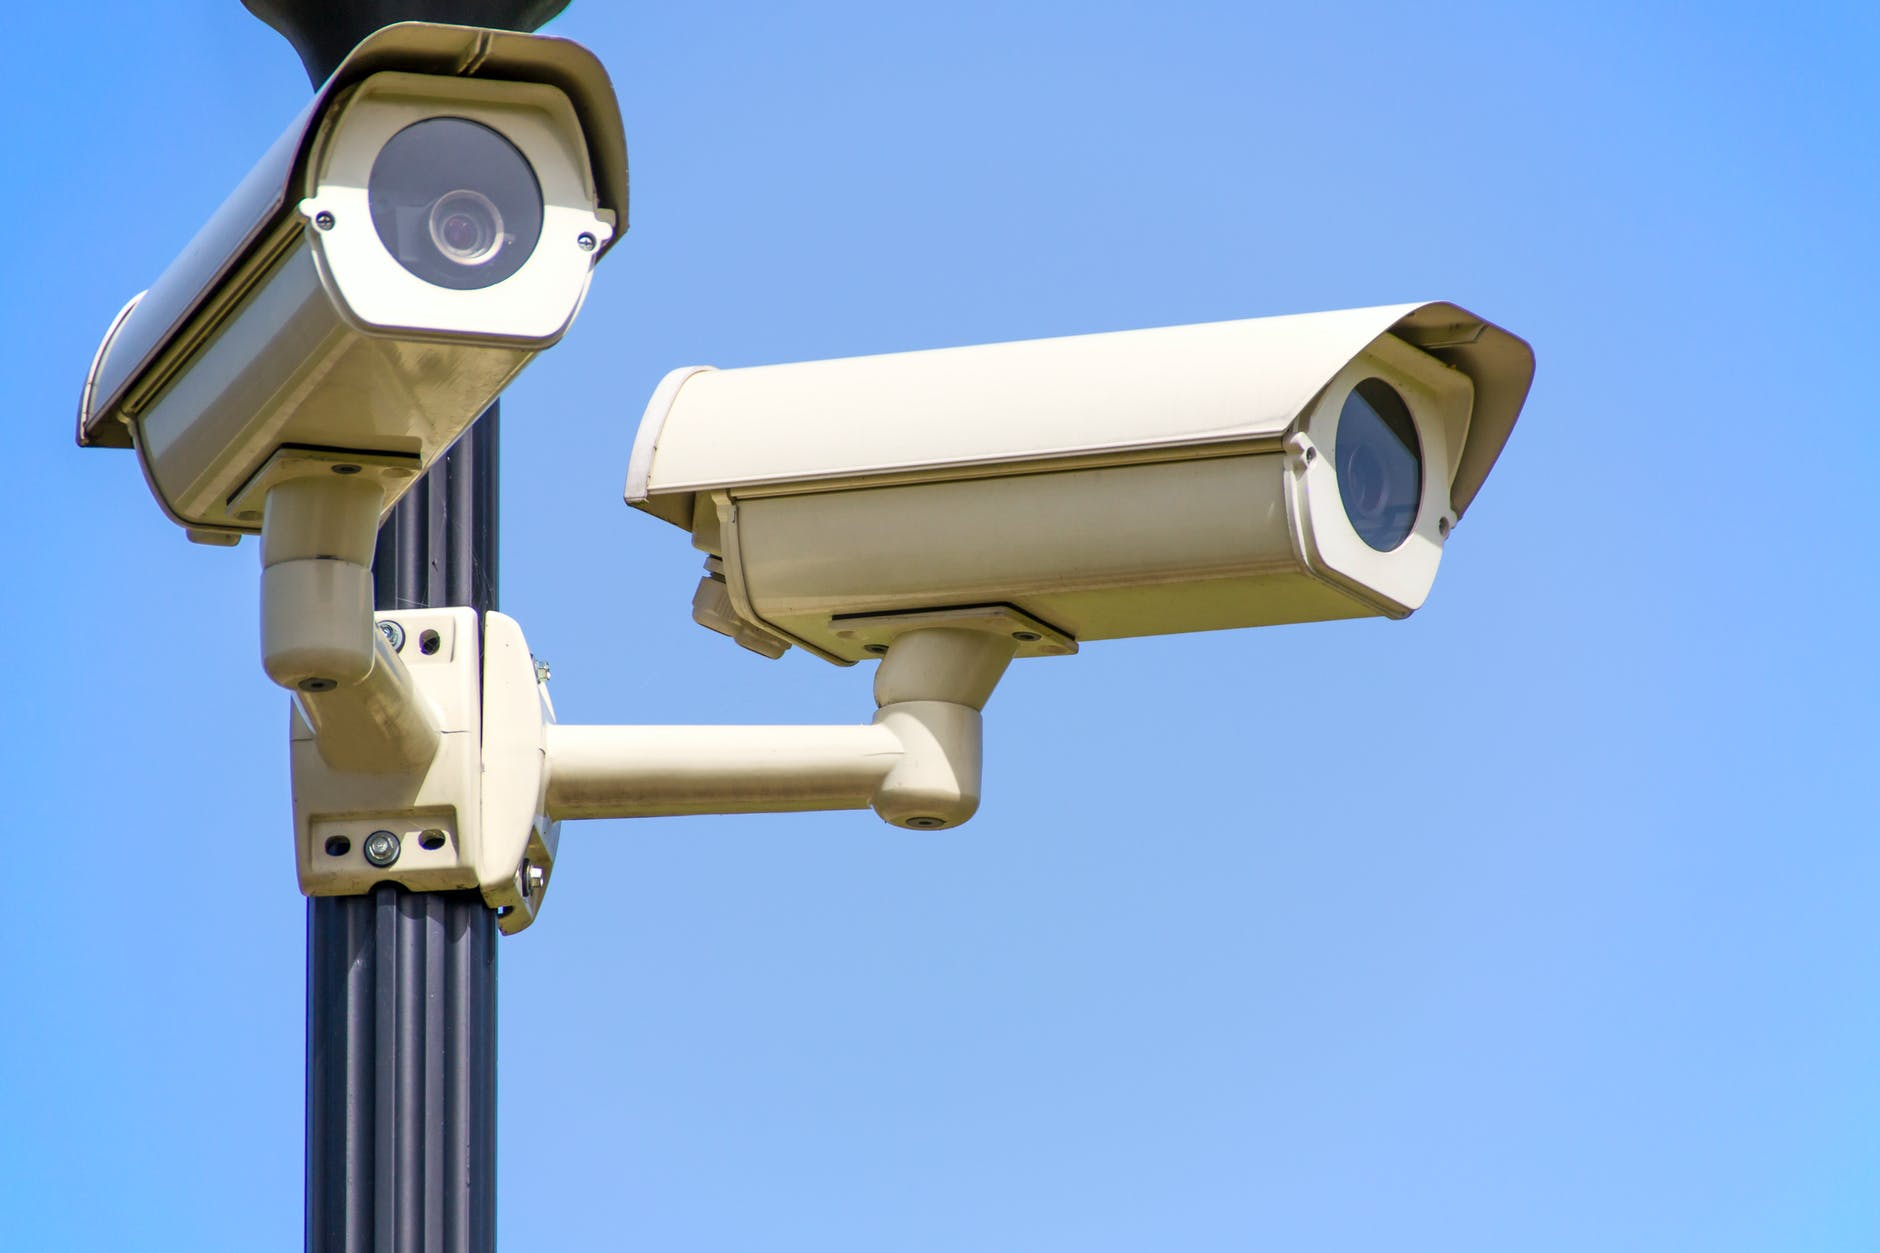 police blue sky security surveillance